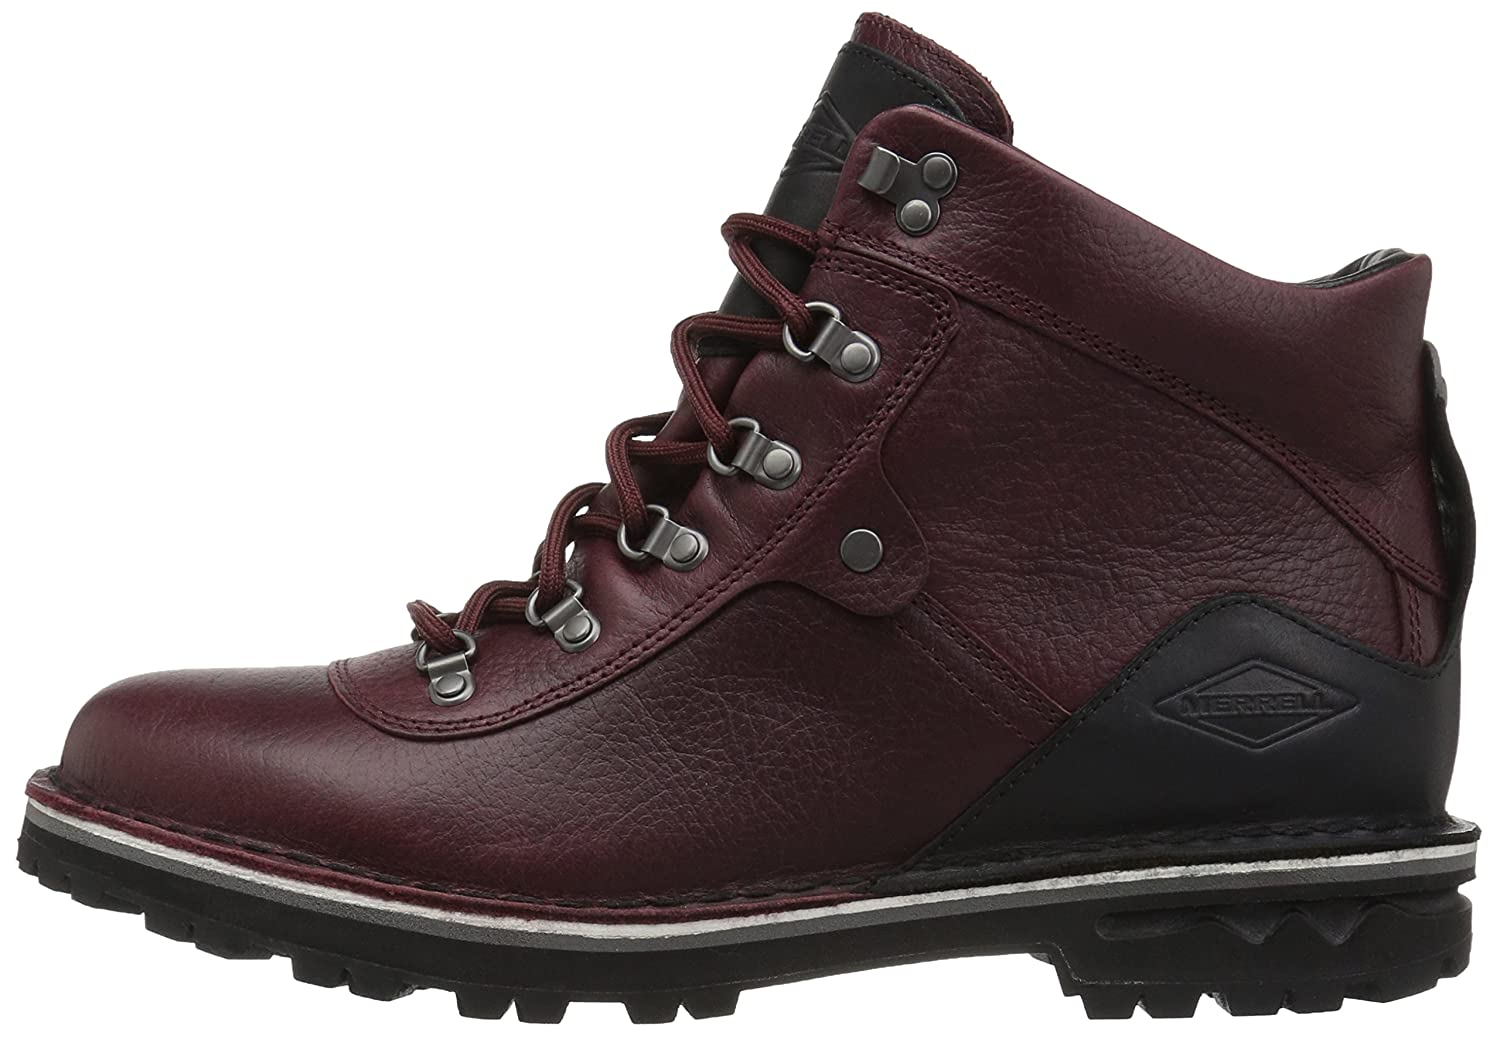 Merrell Hiking Women's Sugarbush Refresh Waterproof Hiking Merrell Boot B01N36ZPR5 5 B(M) US|Andorra 6cd8e0